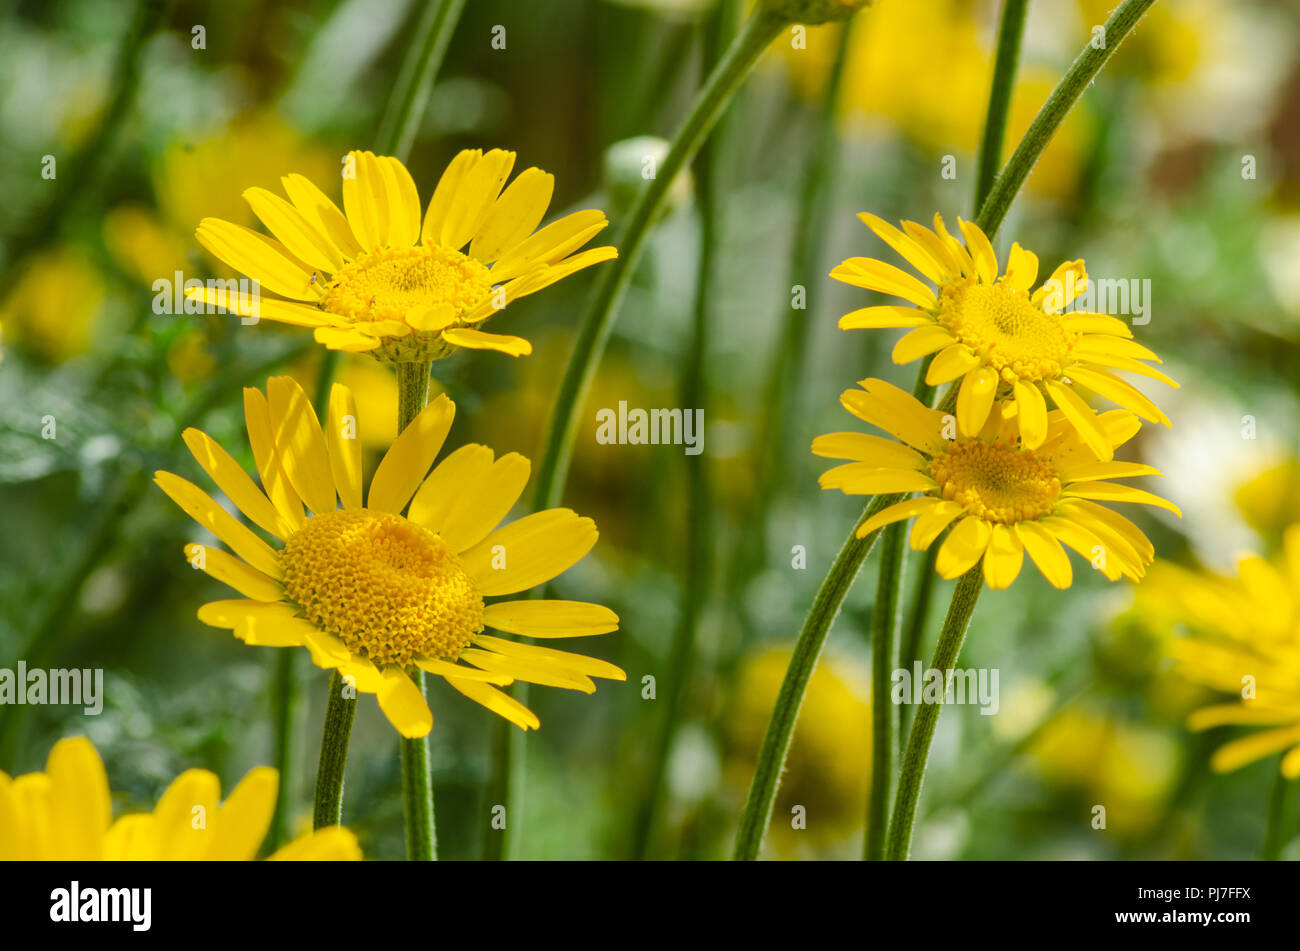 a-close-up-view-of-yellow-anthemis-flowers-PJ7FFX.jpg